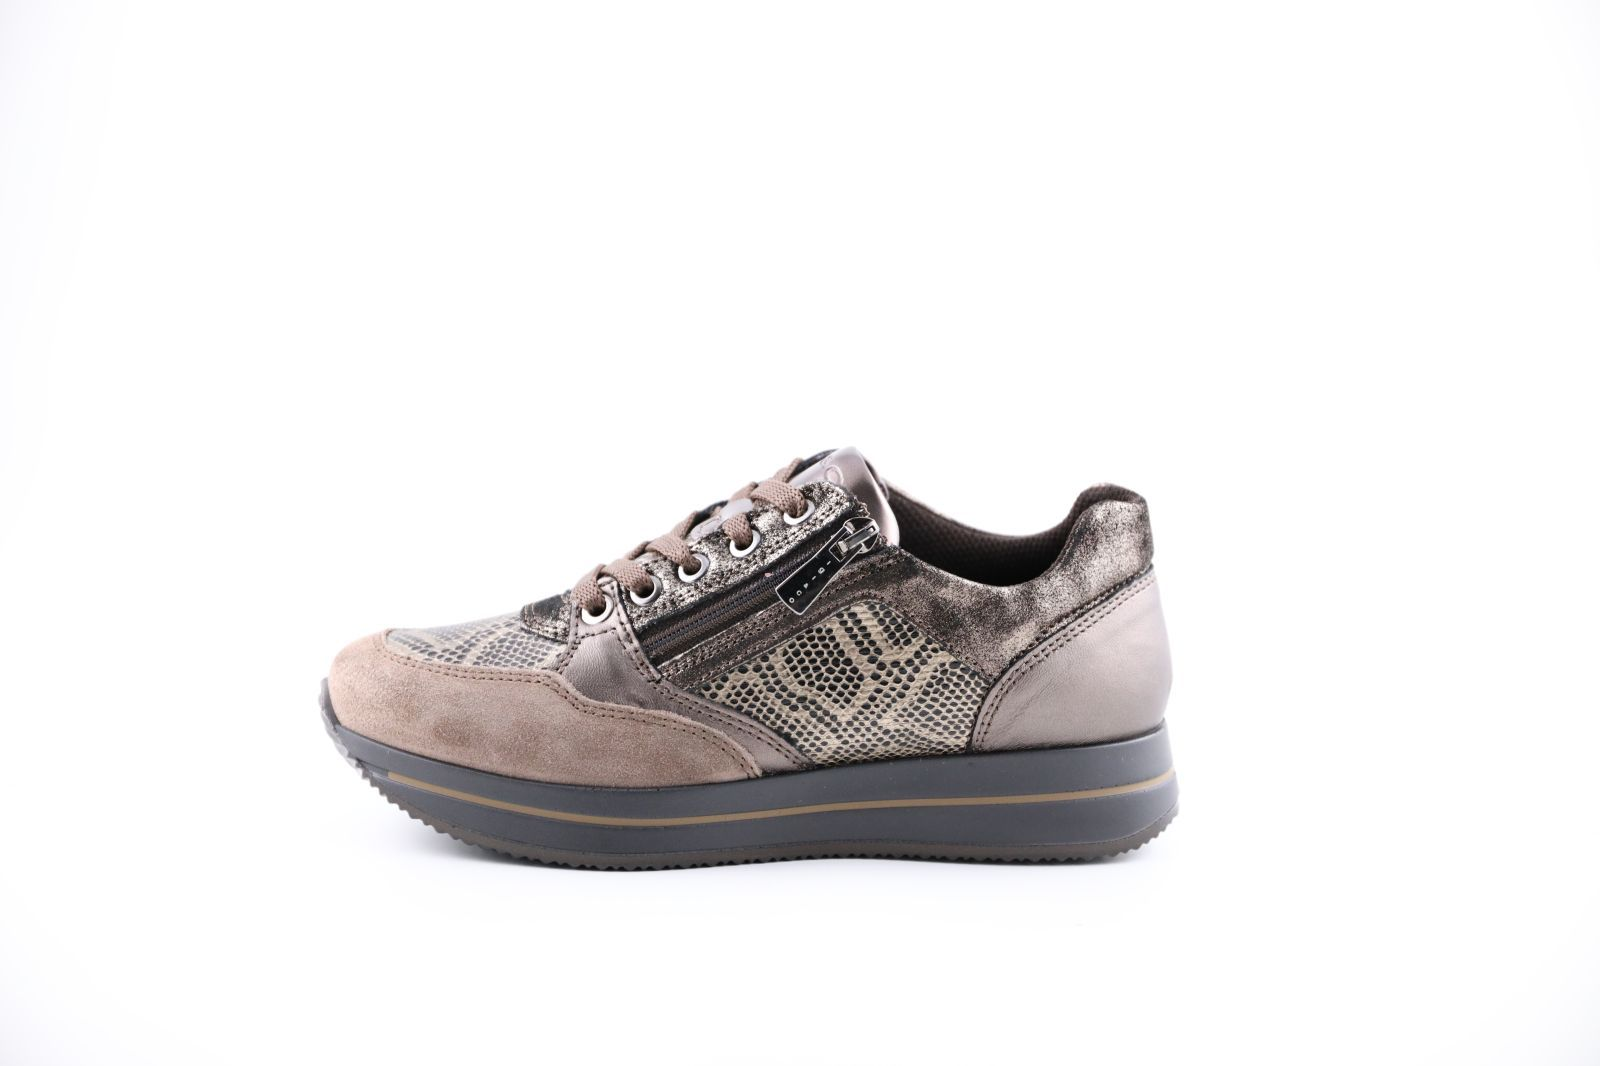 Igi & Co Sneackers Taupe/Bronze dames (Kuga - 6165011) - Marques à Suivre